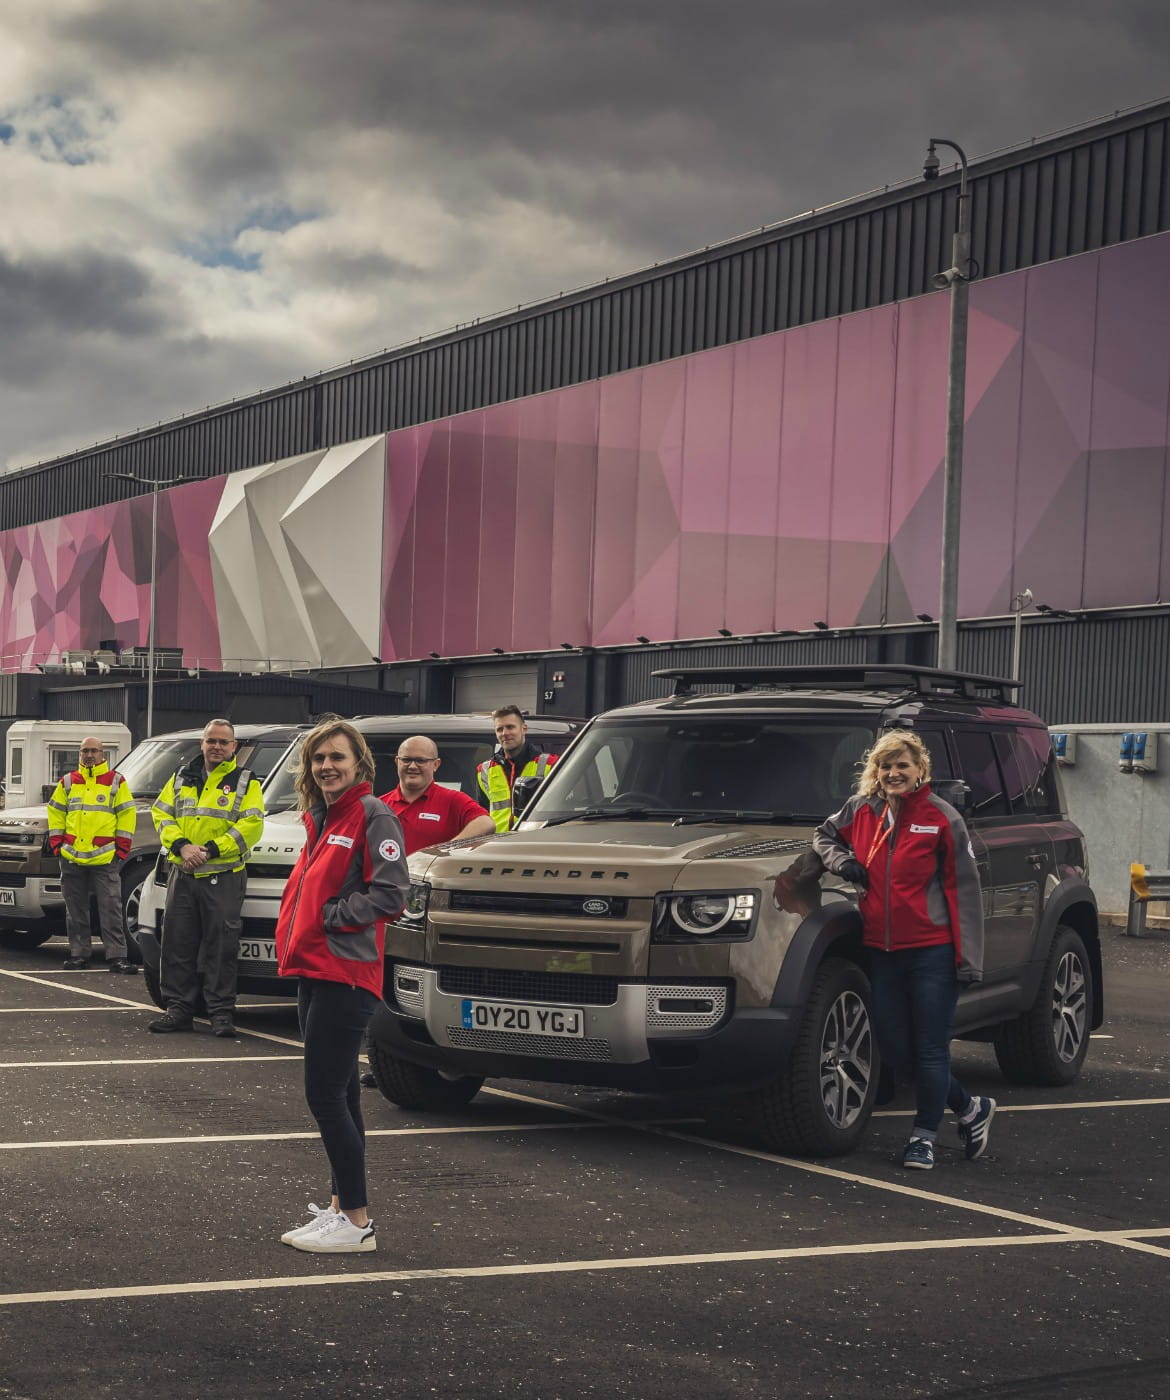 Red Cross personnel pose with Land Rover vehicles